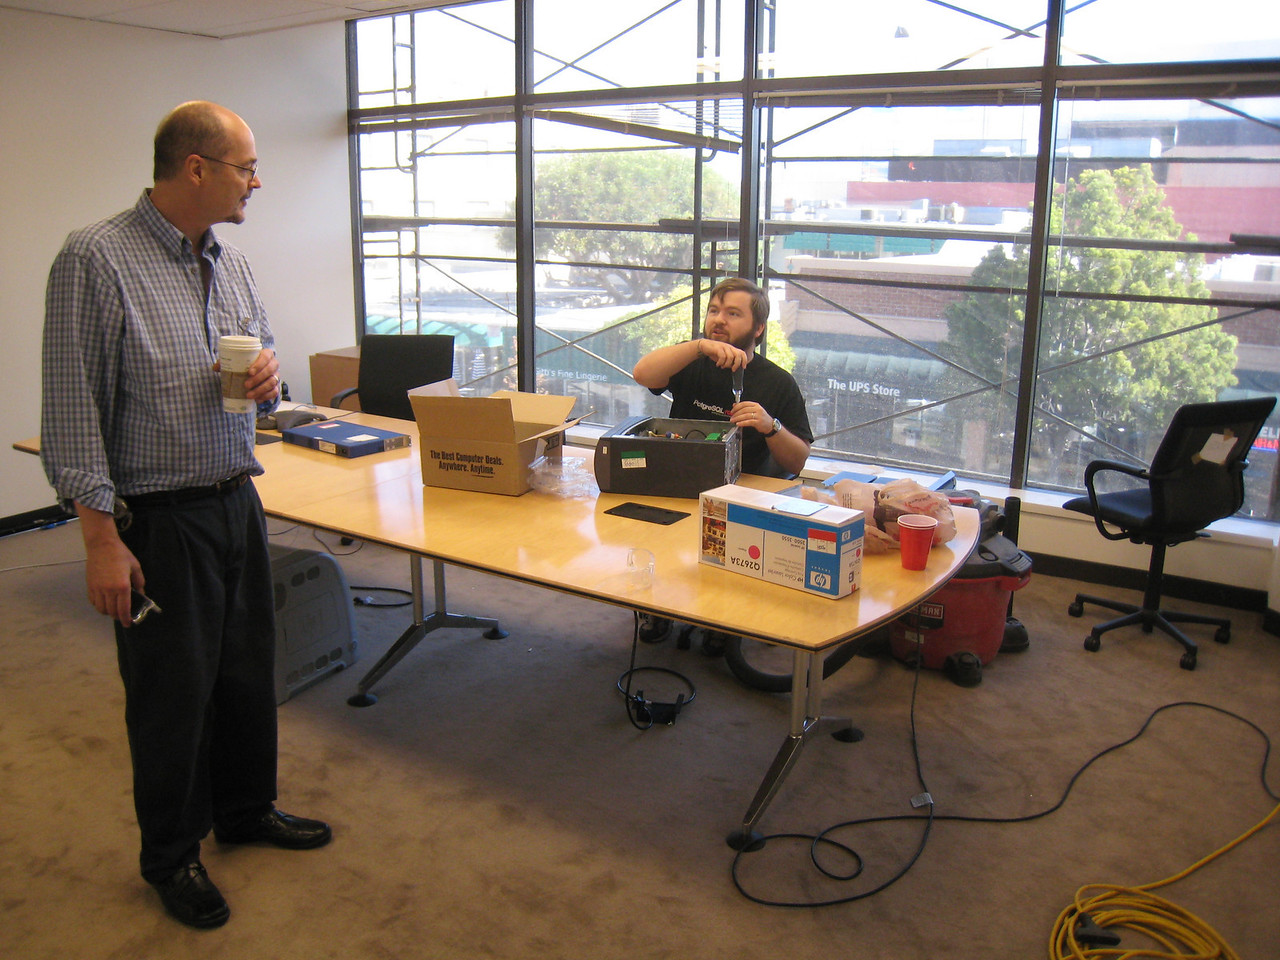 Geoff set up shop in the conference room and made sure we all had gigabit ethernet cards installed